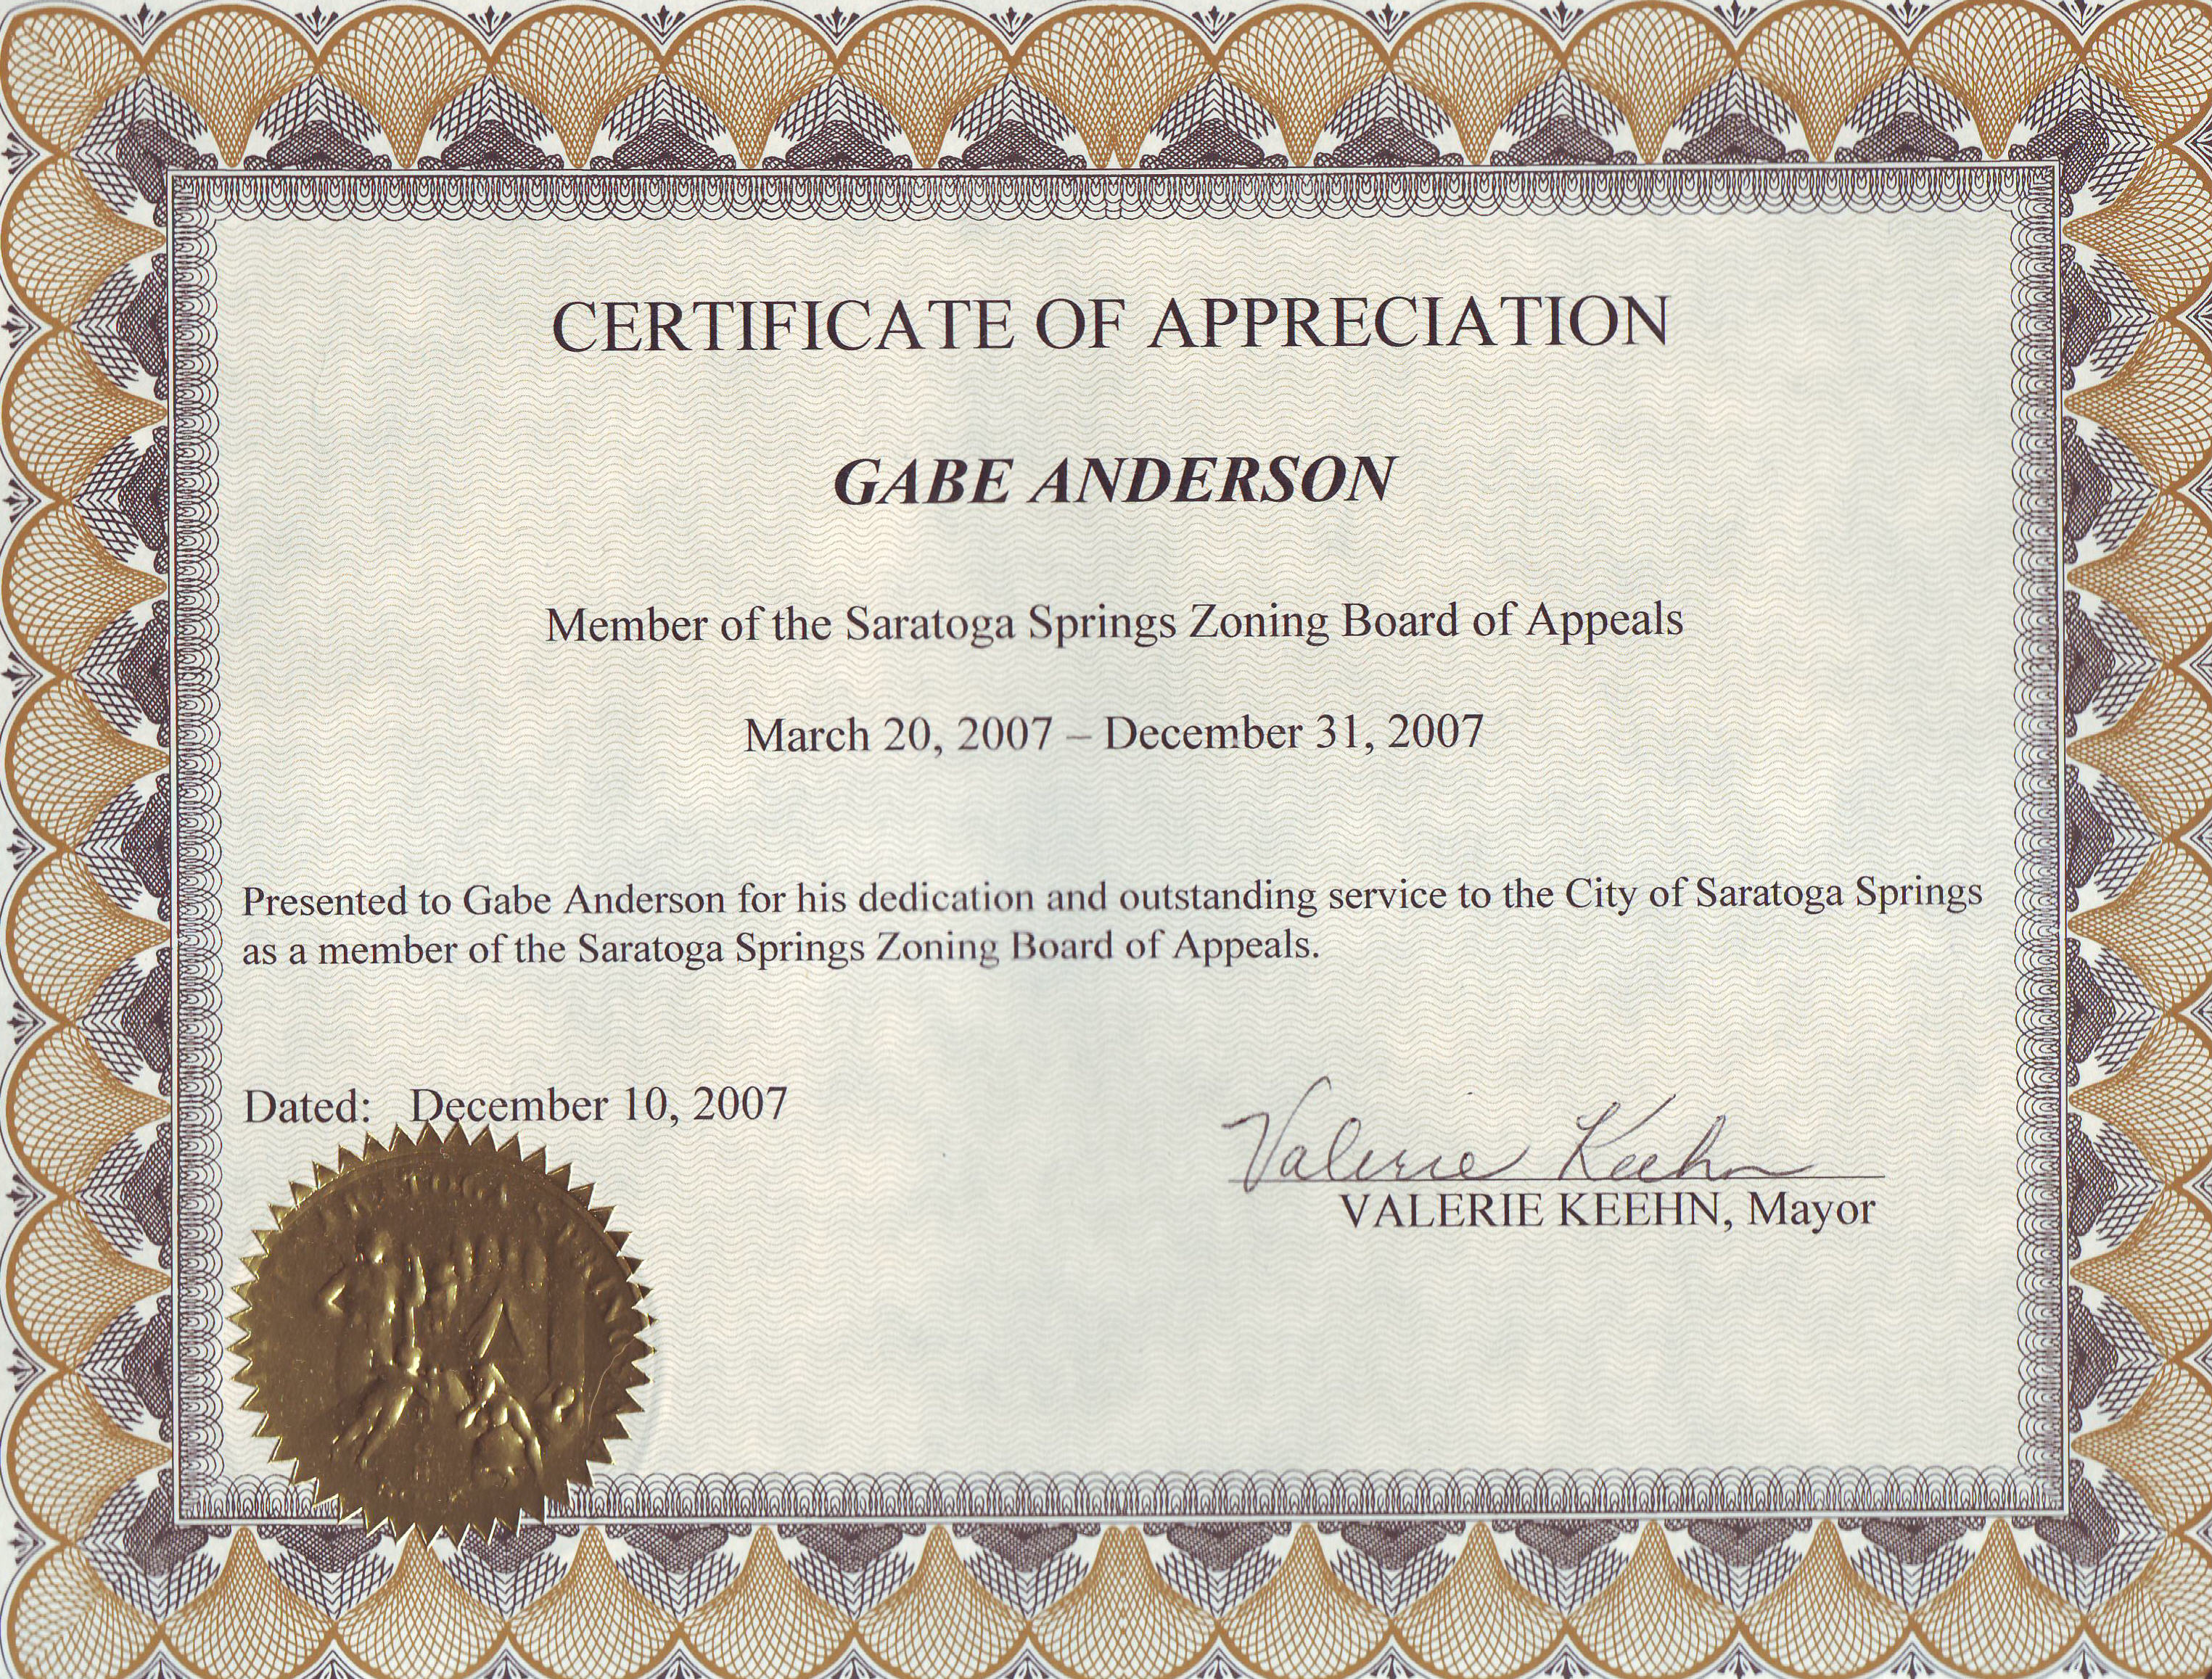 Examples of Certificate of Appreciation http://blogmasterg.com/2008/01/05/i-made-the-saratogian-front-page/